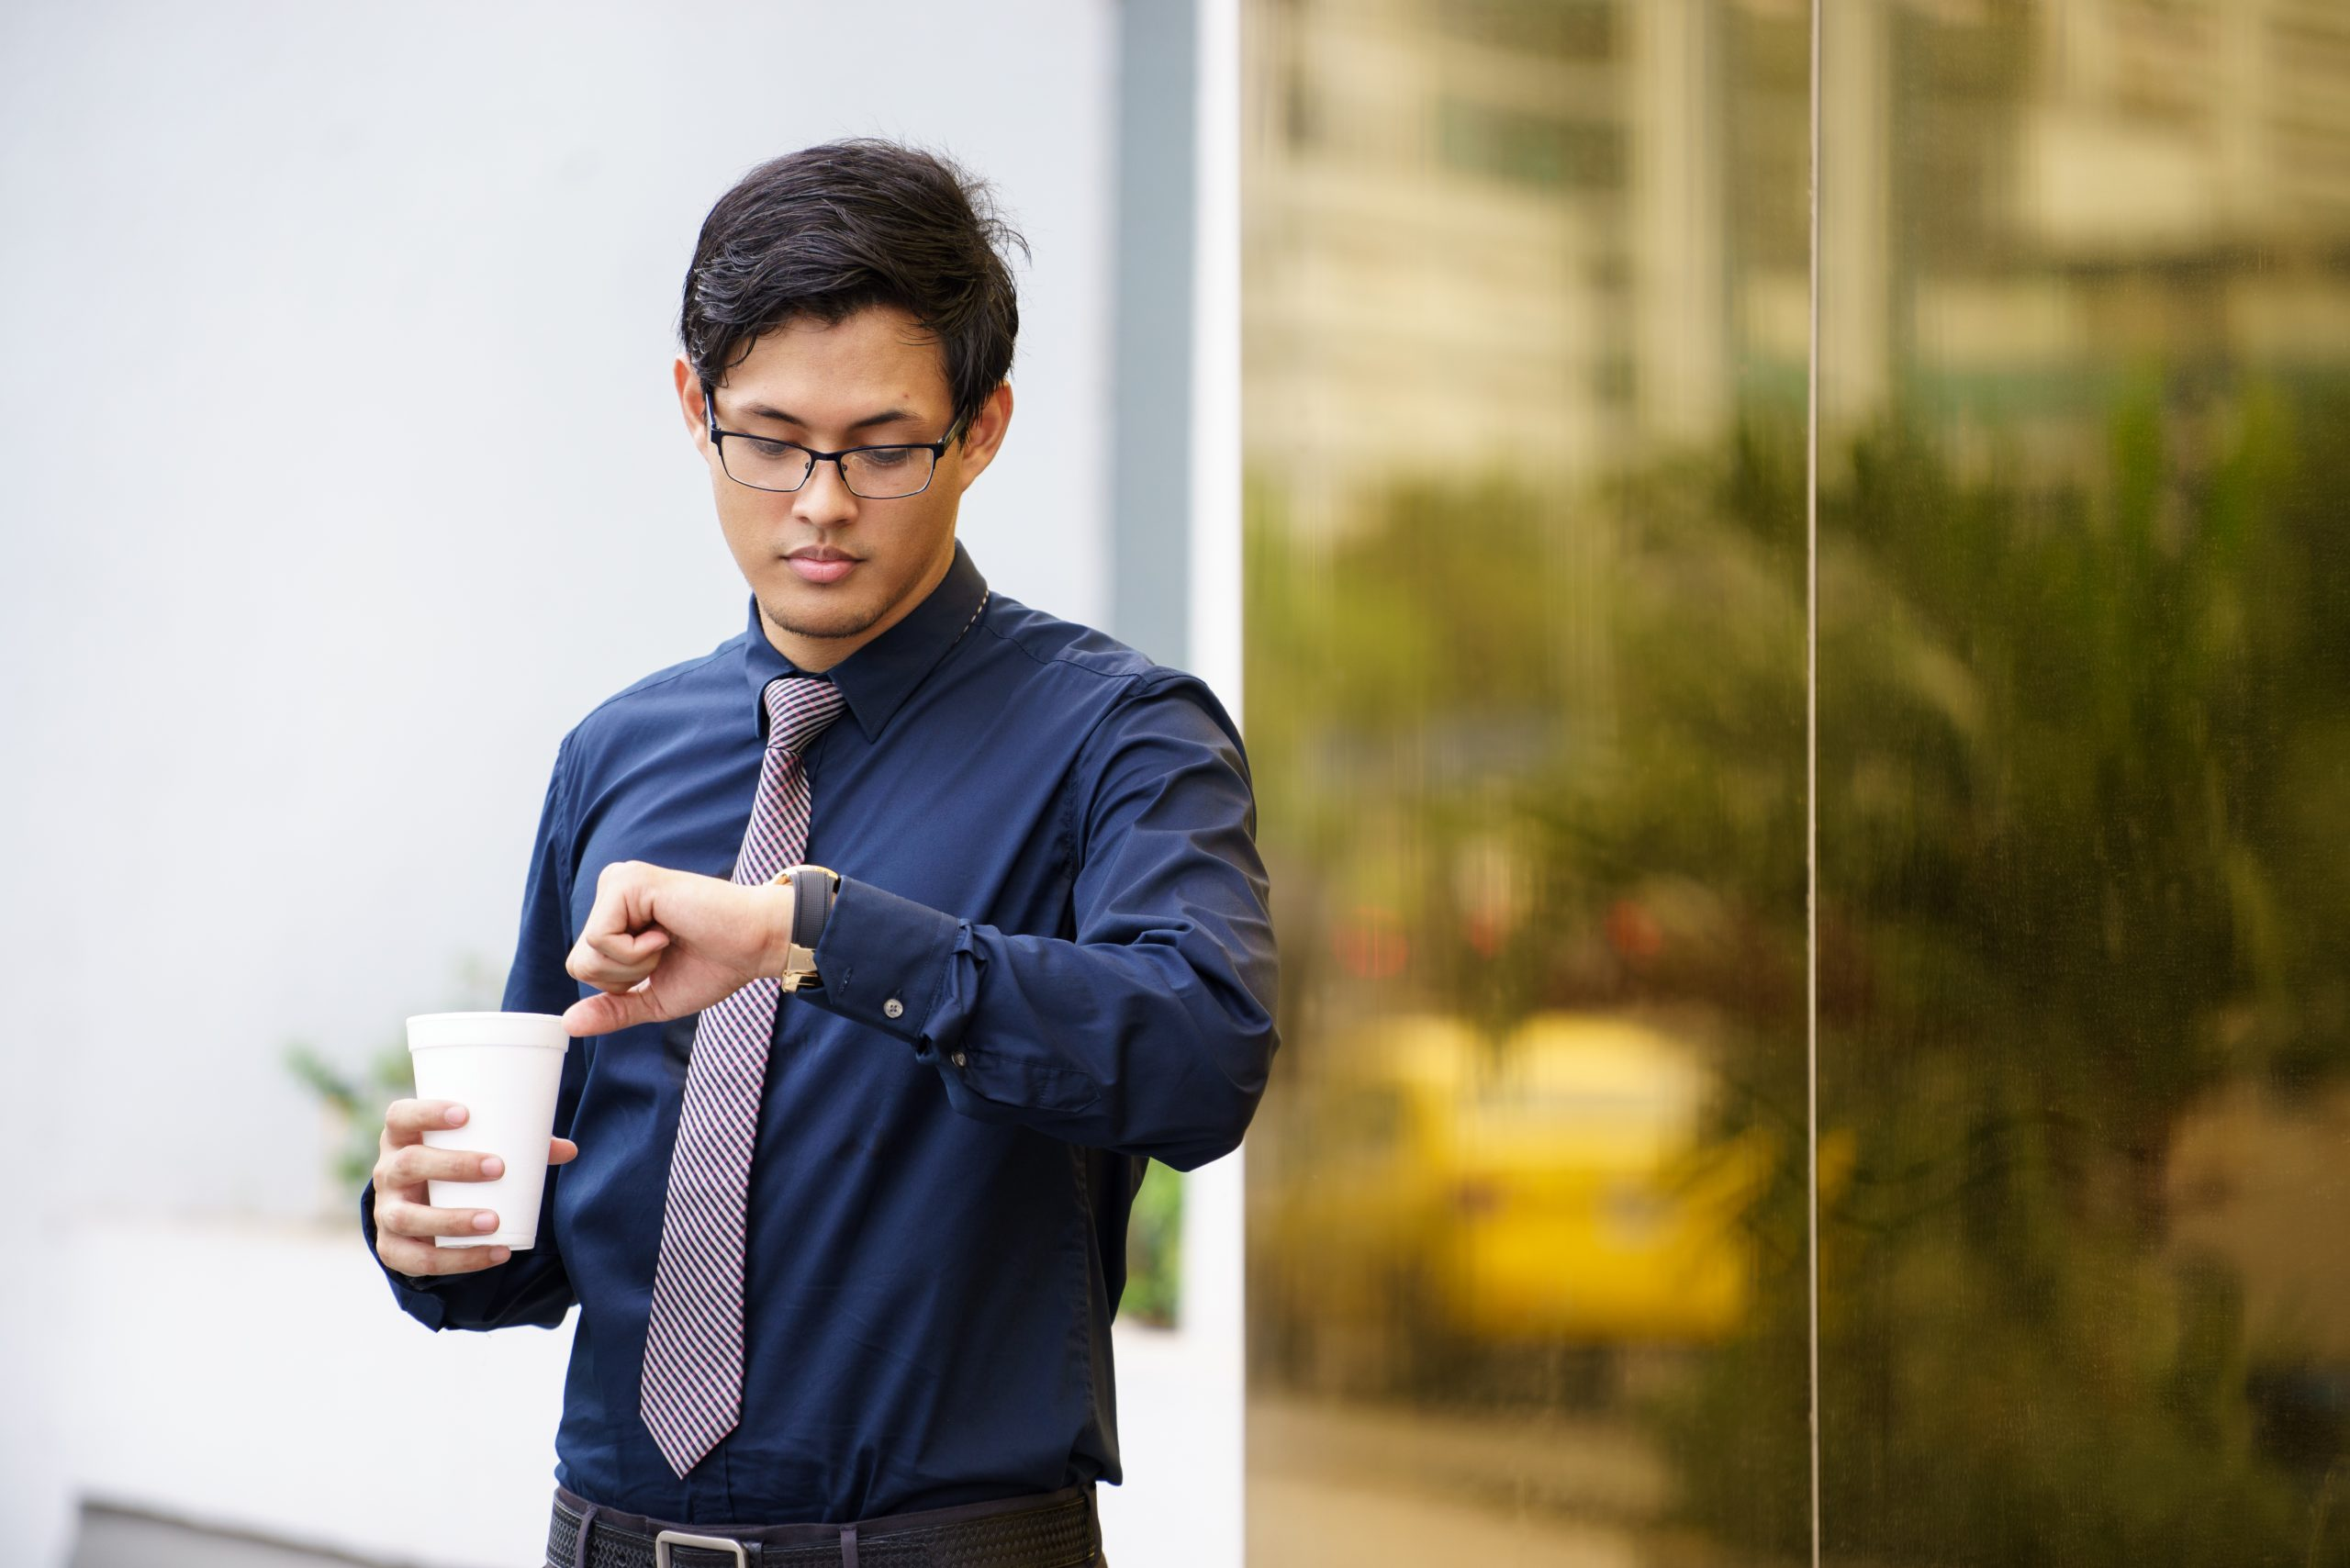 Portrait of chinese businessman standing near office building in Panama with coffee cup and checking the time on watch